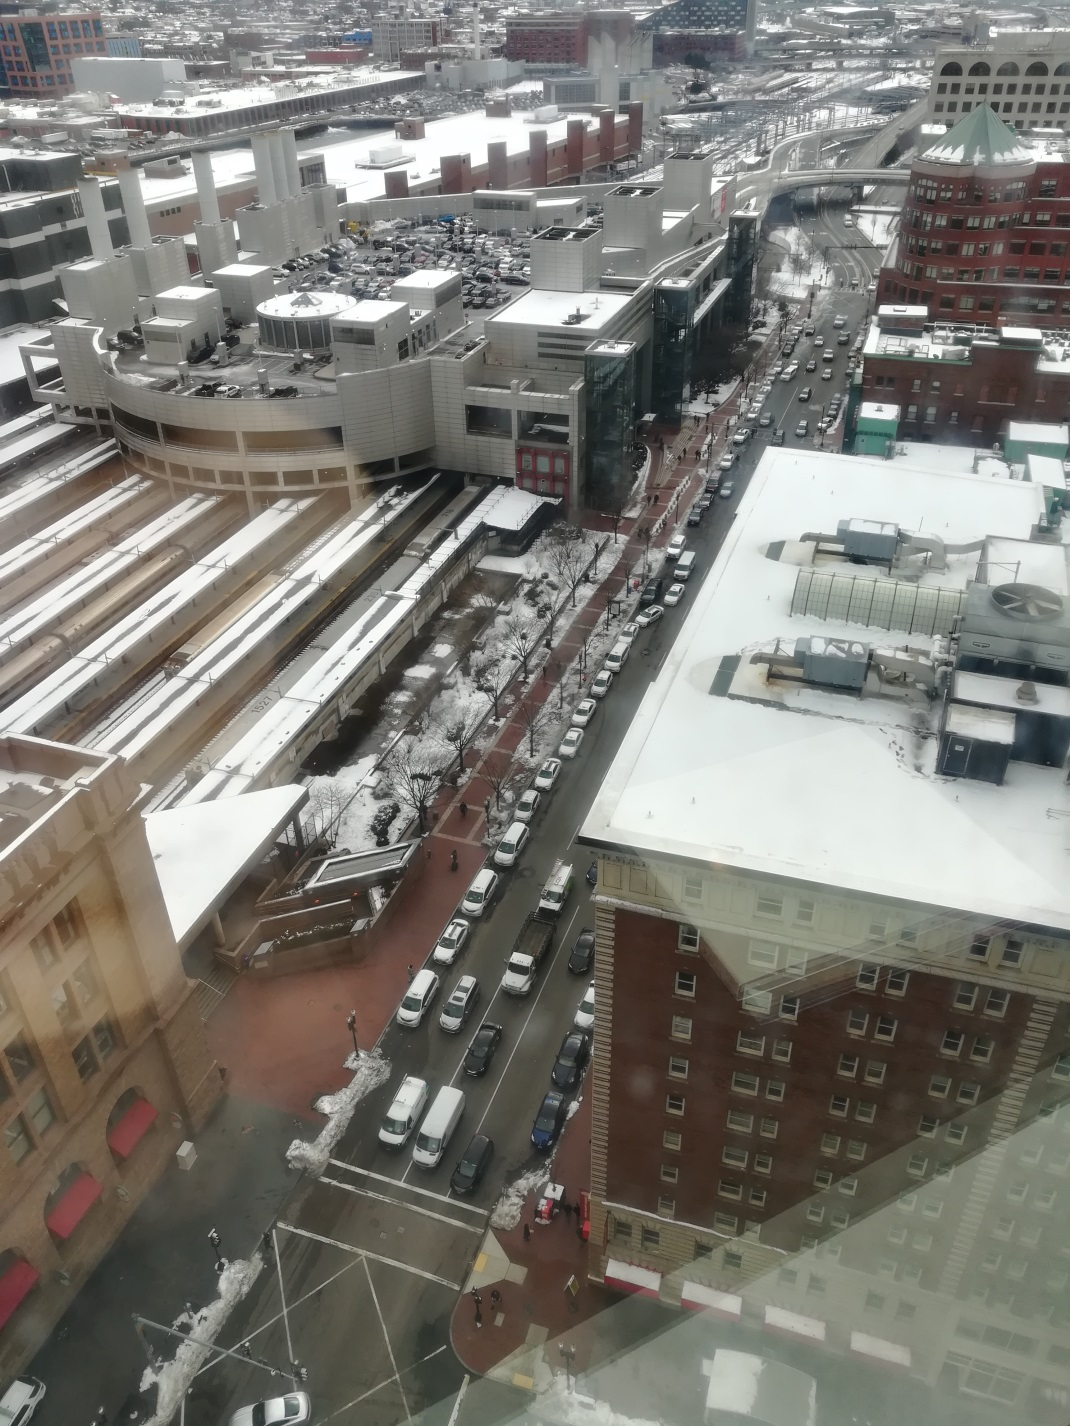 Taxis and ride-sharing cars lining up in front of the South Station, Boston (Photo: Julian Bluemle)